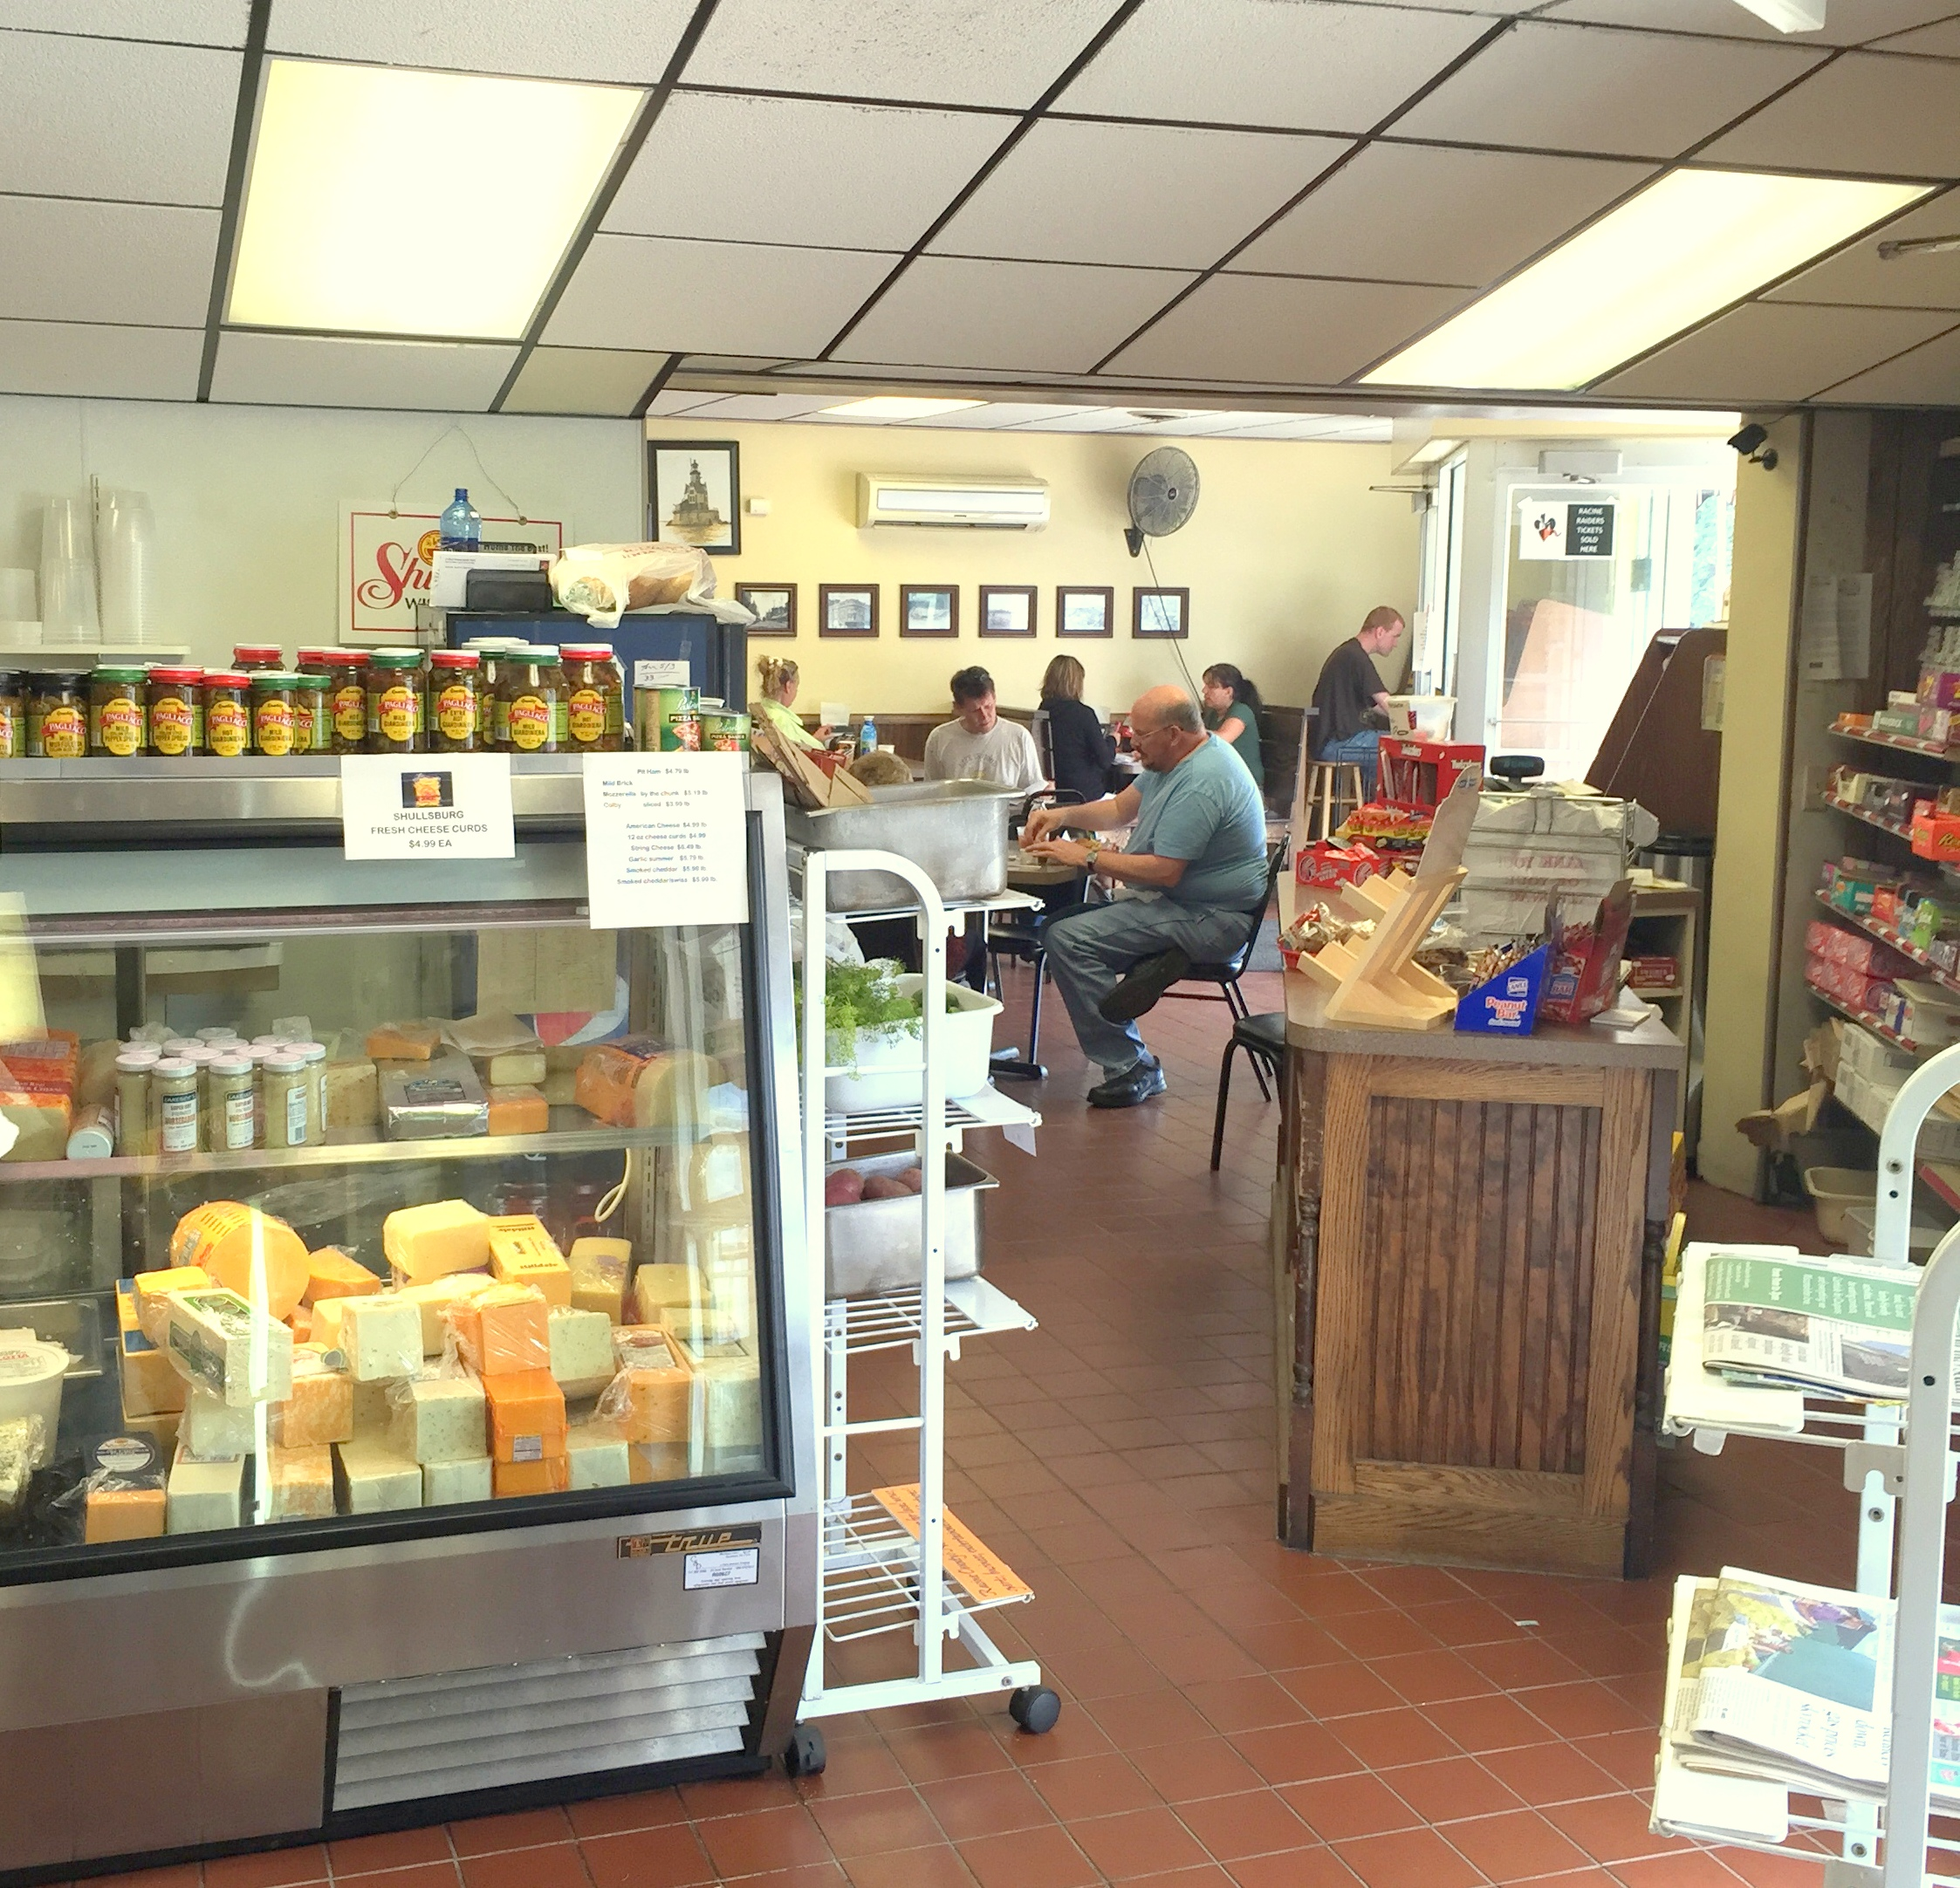 Kitchen Countertops Kenosha: Grilled Cheese Results: Iconic Wisconsin Spot Lives Up To